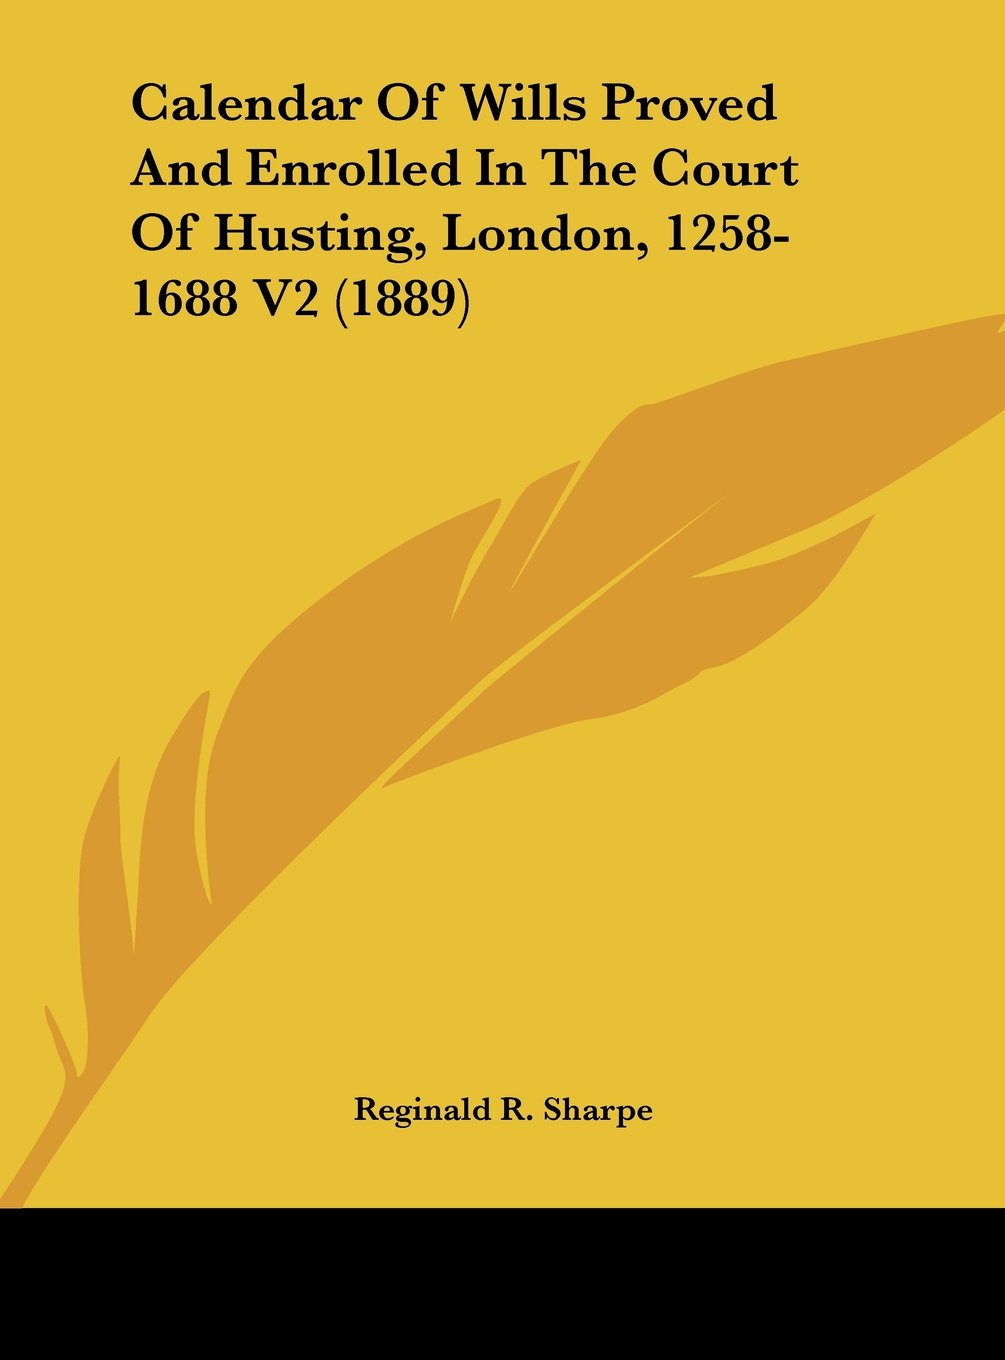 Read Online Calendar Of Wills Proved And Enrolled In The Court Of Husting, London, 1258-1688 V2 (1889) pdf